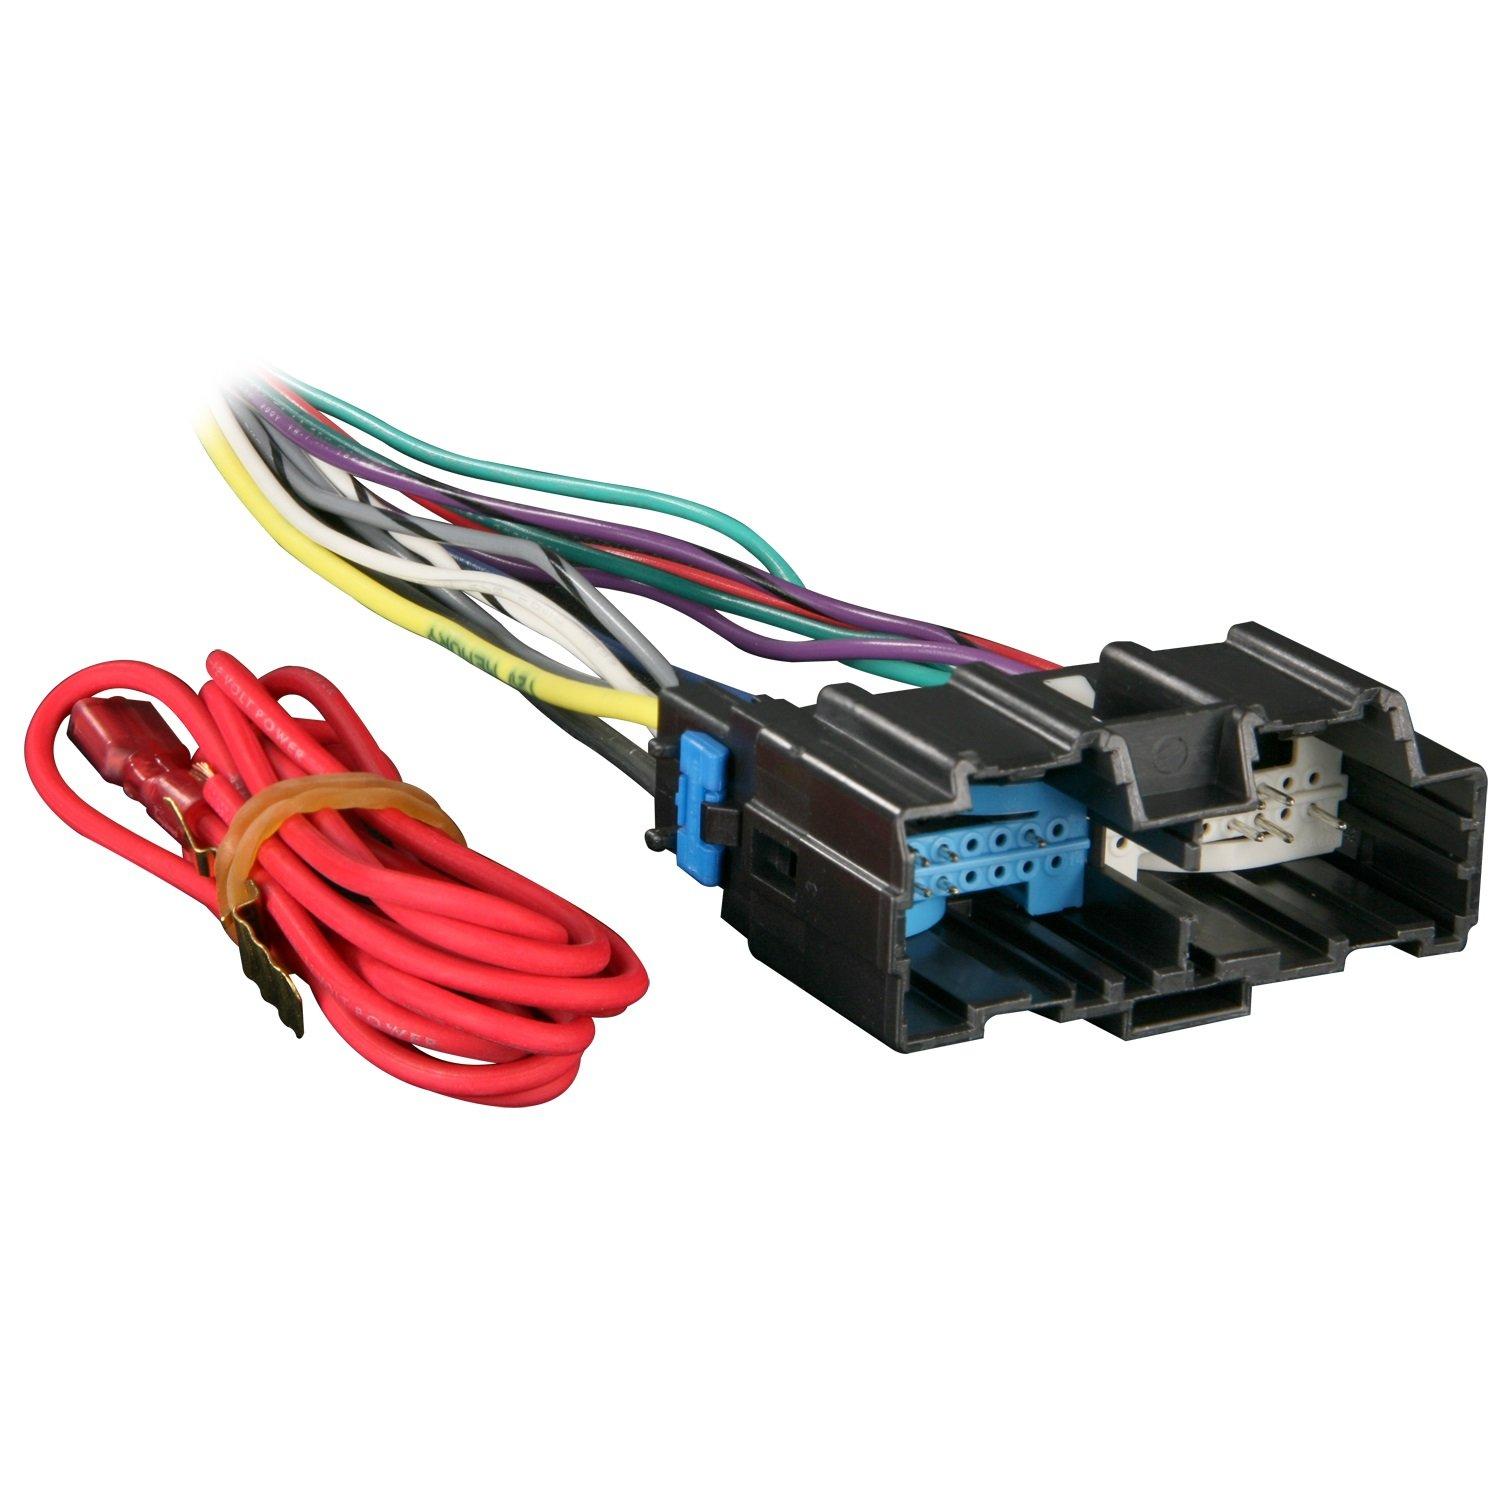 71ZzH dyg7L._SL1500_ amazon com metra 70 2105 radio wiring harness for impala monte 2008 chevy impala stereo wiring harness at fashall.co